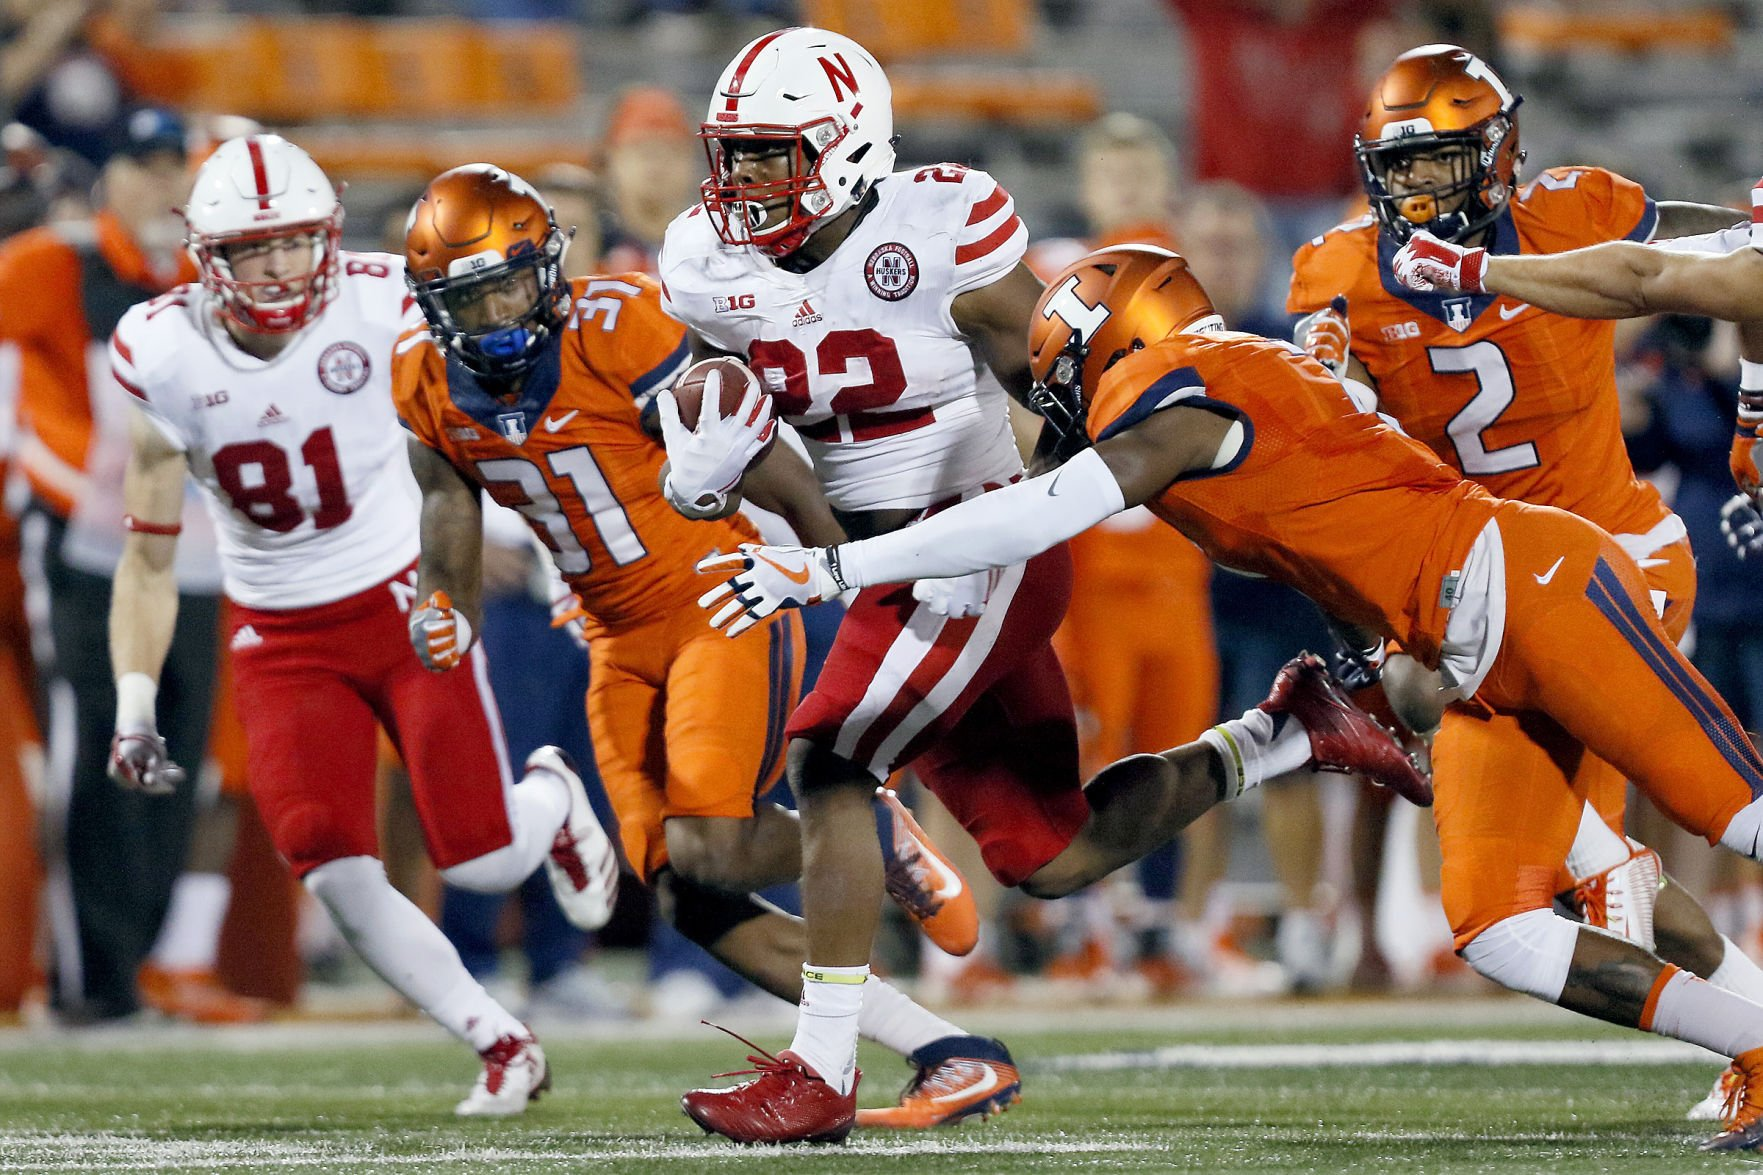 Tanner throws 3 TDs, Nebraska rolls past IL 28